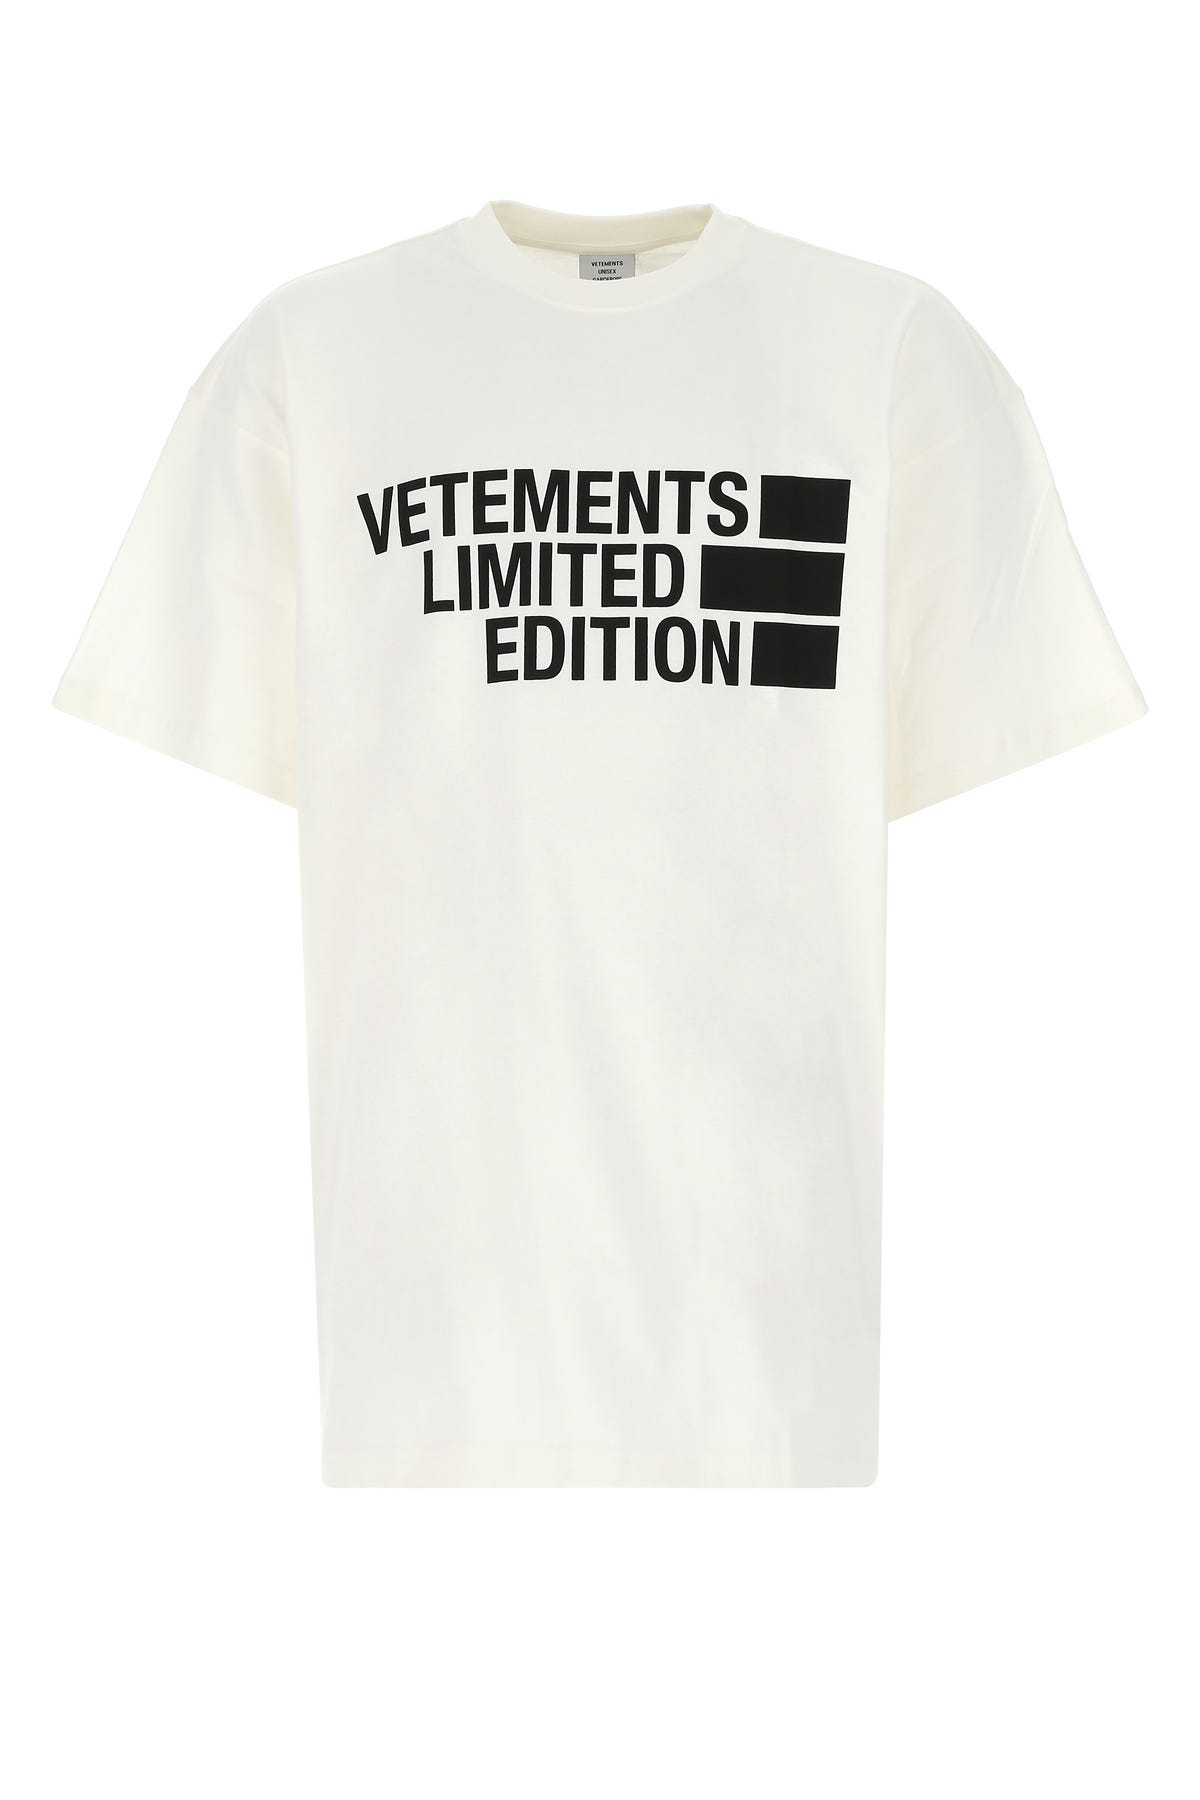 Vetements T-SHIRT-XS